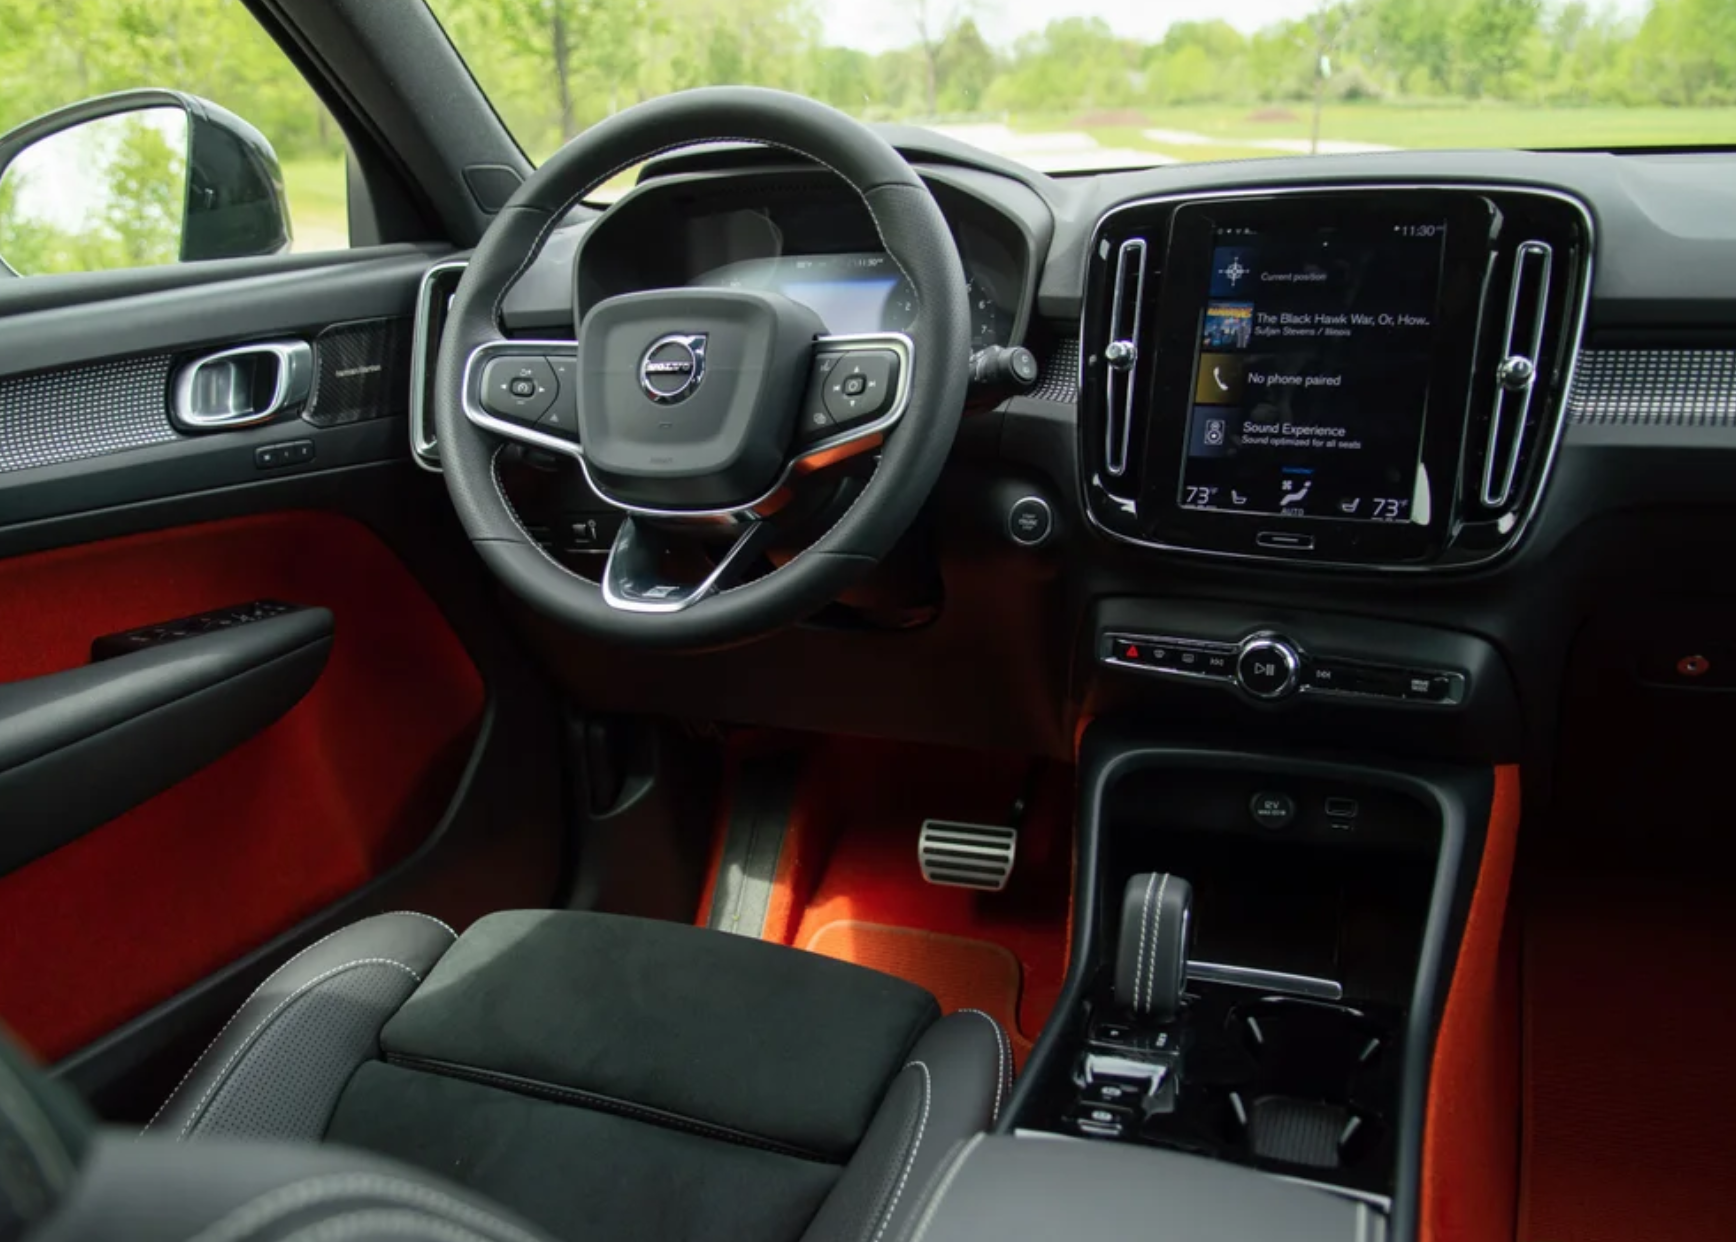 Photograph of the interior of a car showing touch screens, buttons and dials